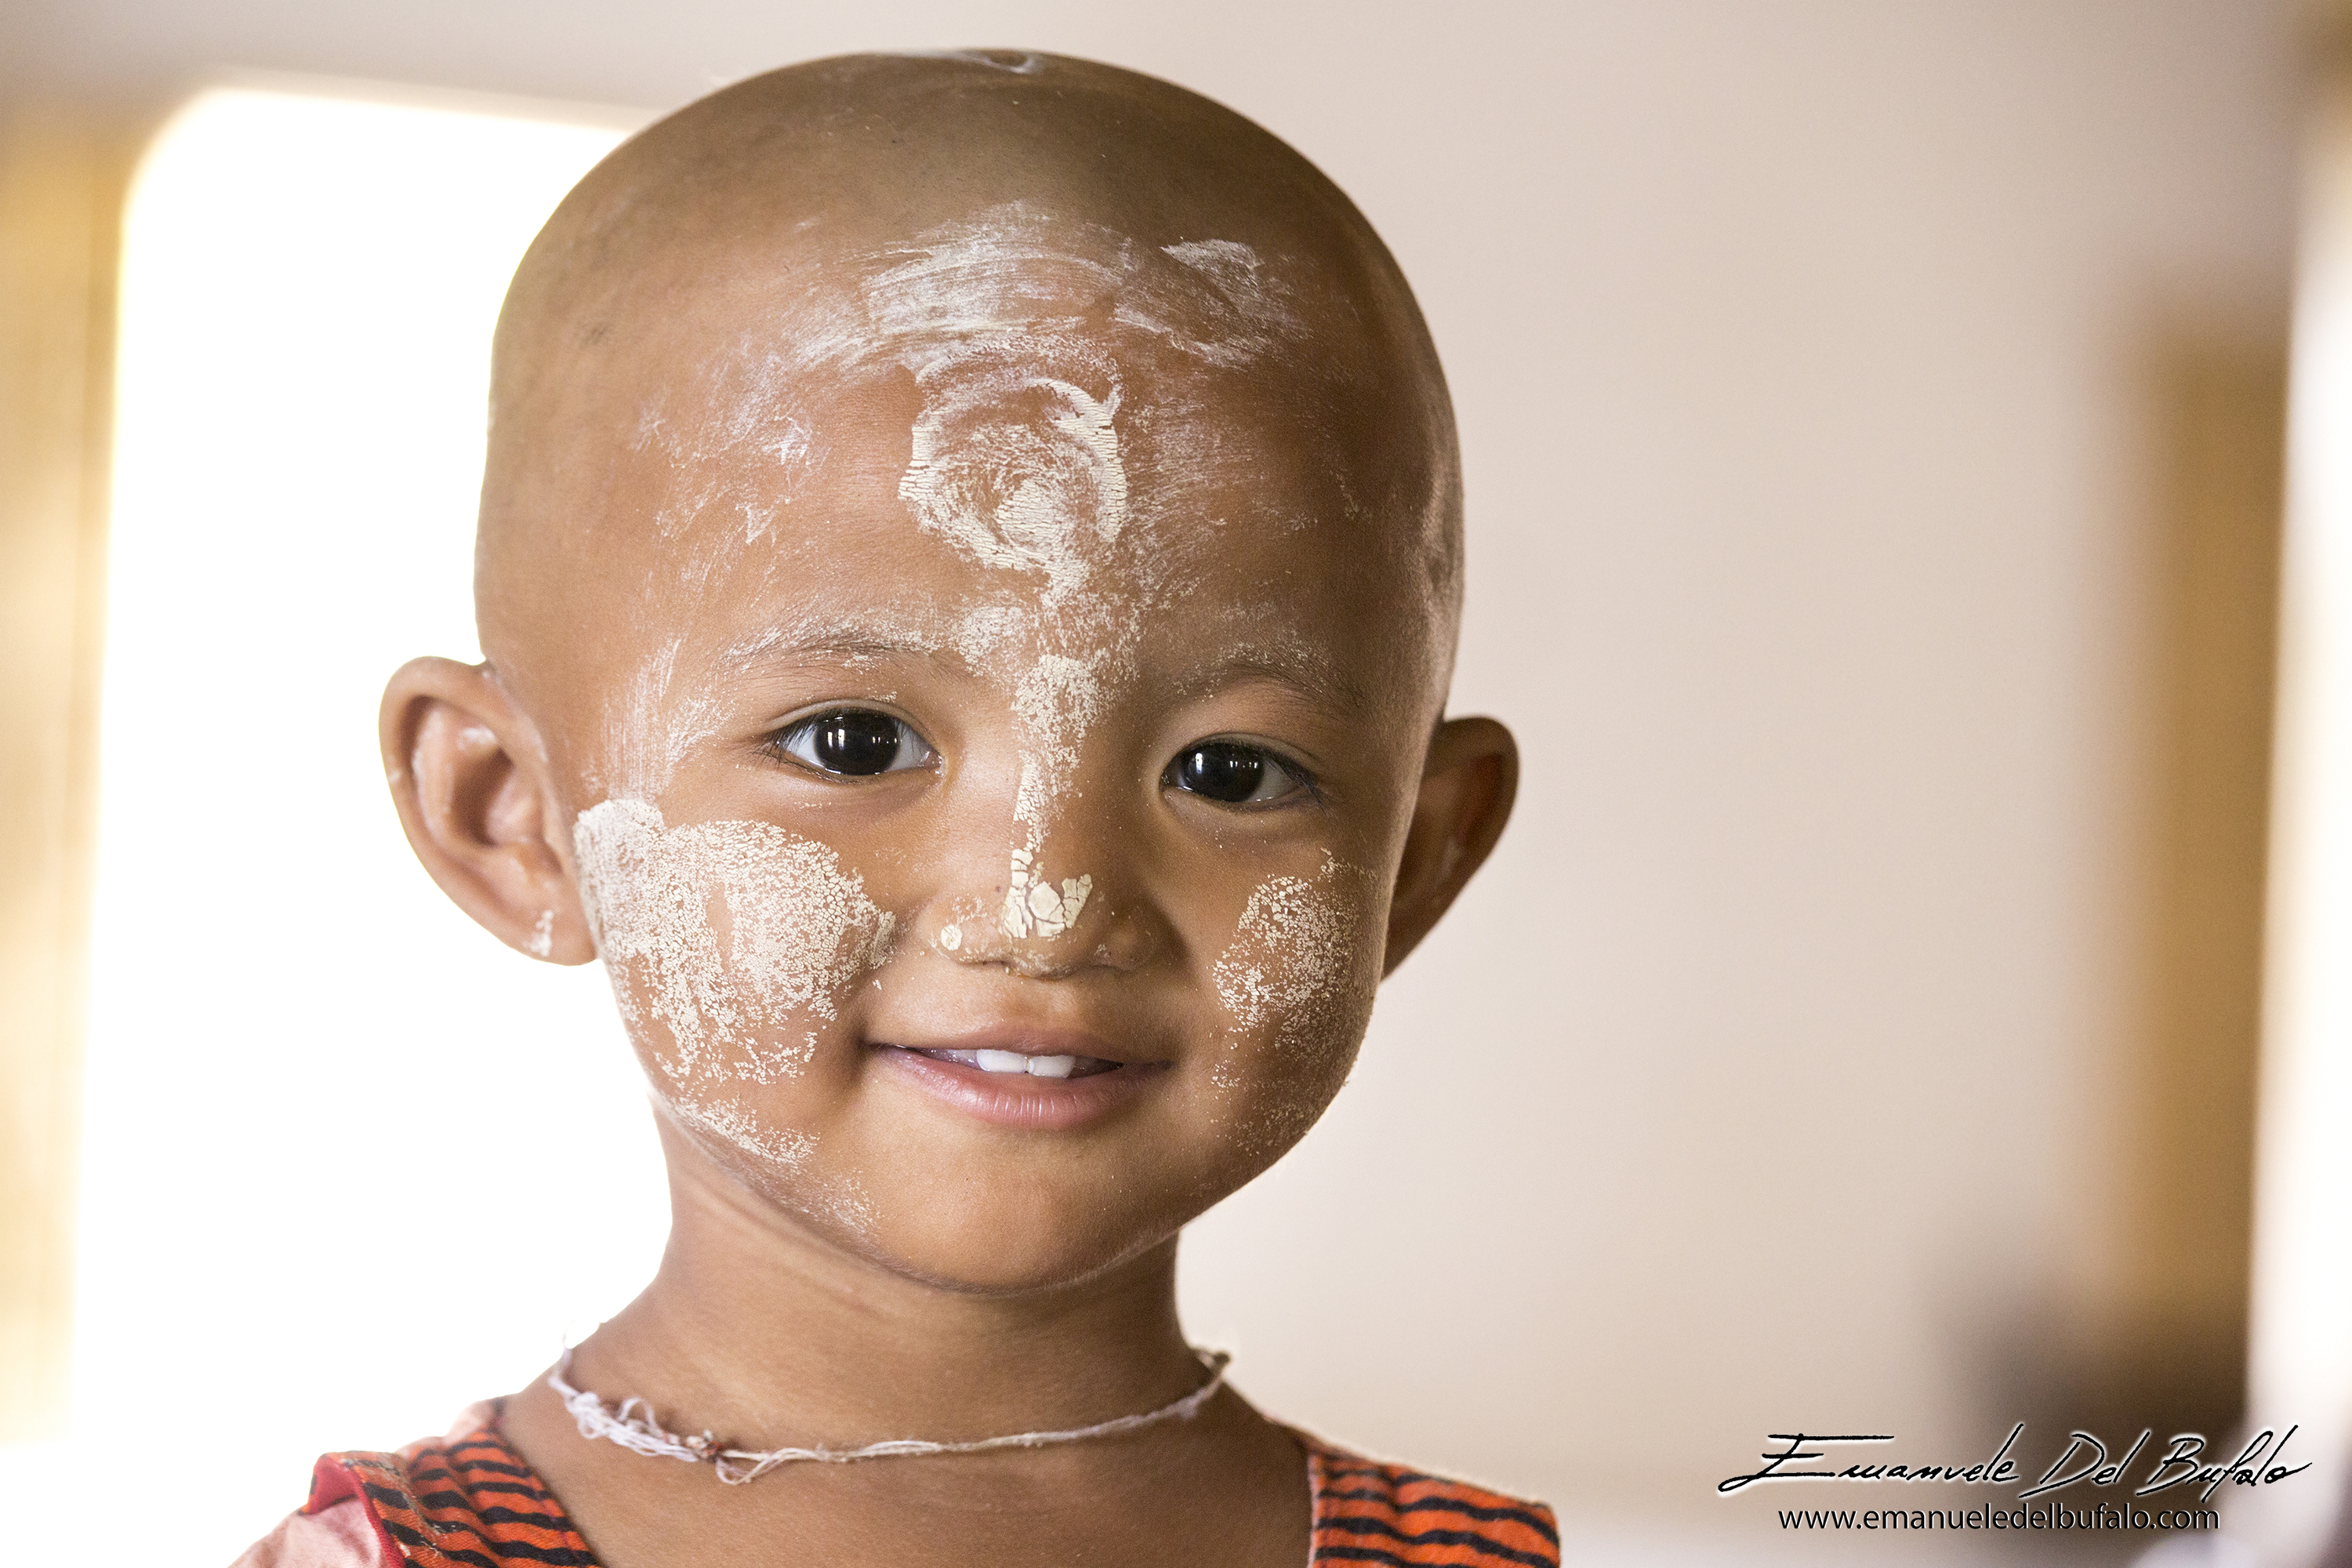 www.emanueledelbufalo.com #myanmar #burma #monastery #kid #people #culture #travel